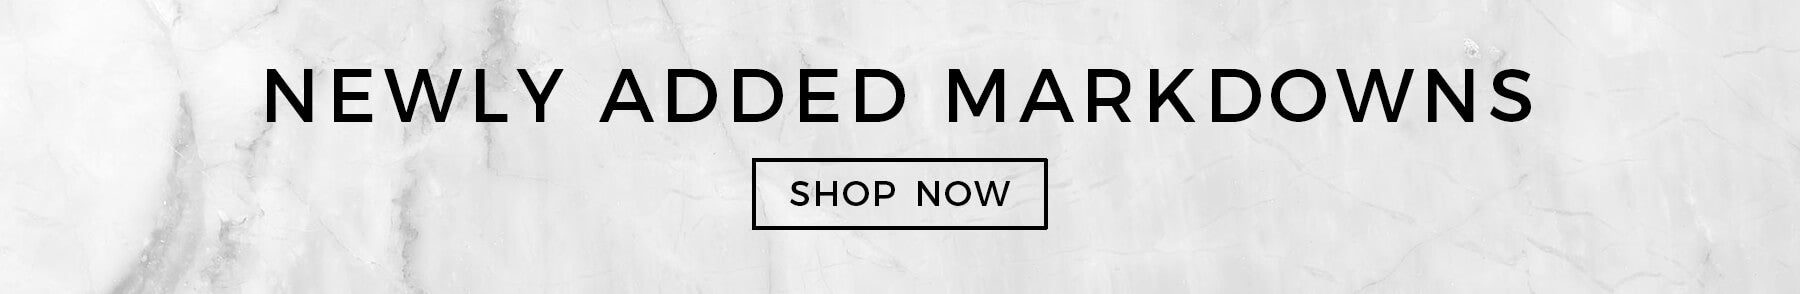 Newly Added Markdowns